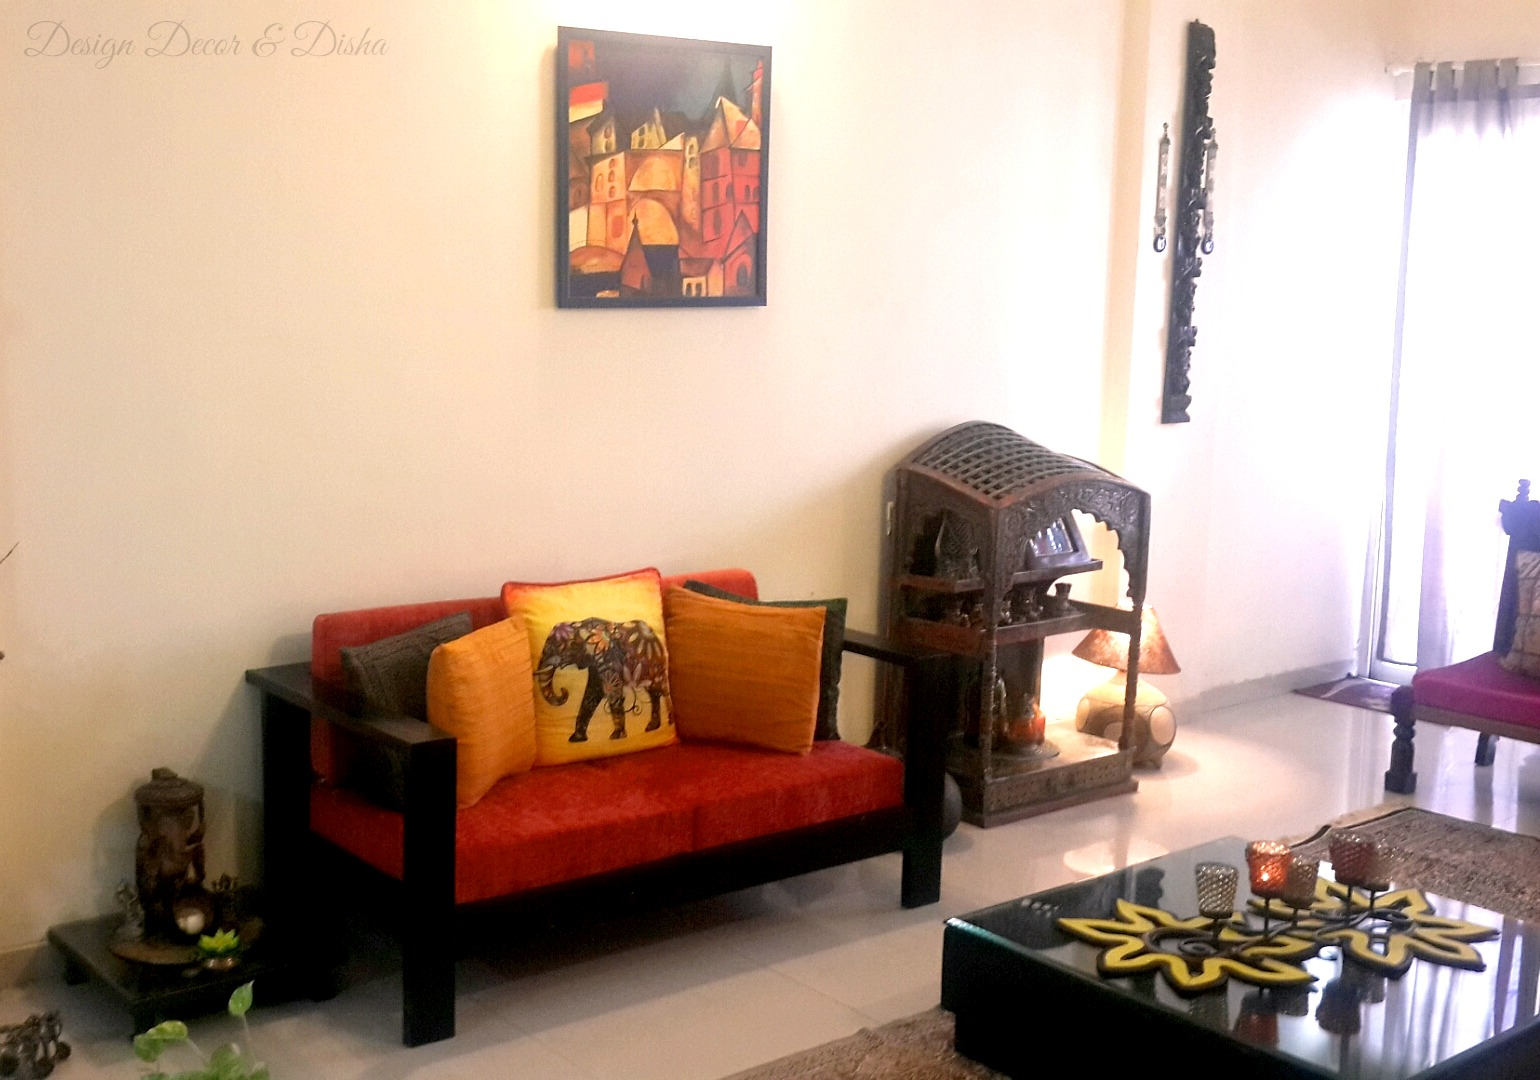 Design Decor Disha An Indian Design Decor Blog Home Tour Kapila Banerjee